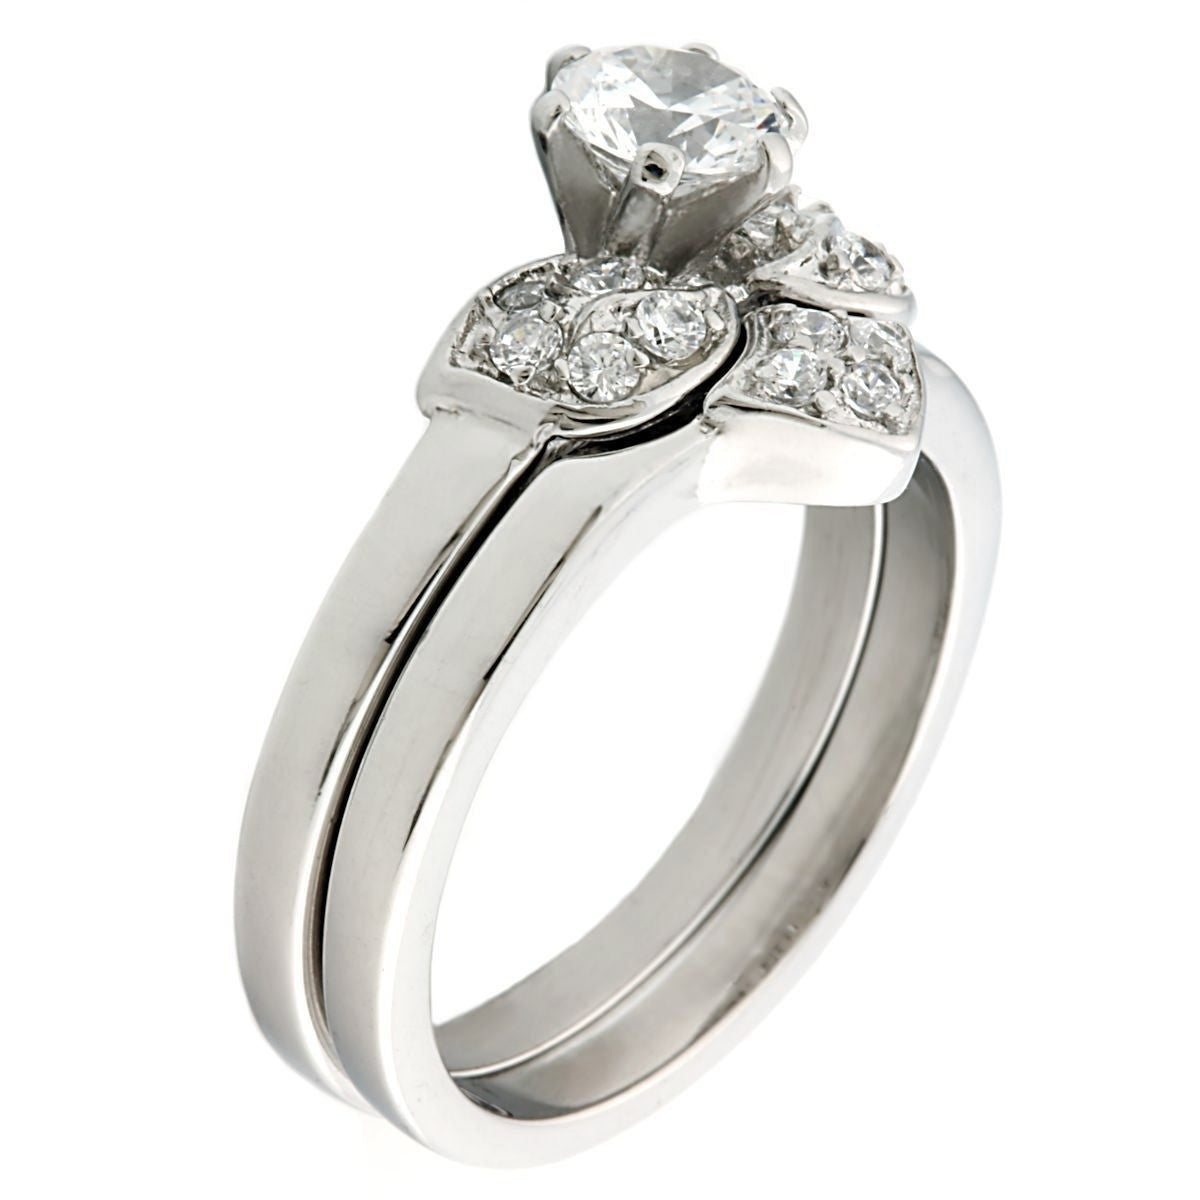 Paige Floral Designed 071ct Russian Iof Cz 2 Pc Wedding Ring Set Trustmark: 2 Pc Wedding Ring Sets At Reisefeber.org